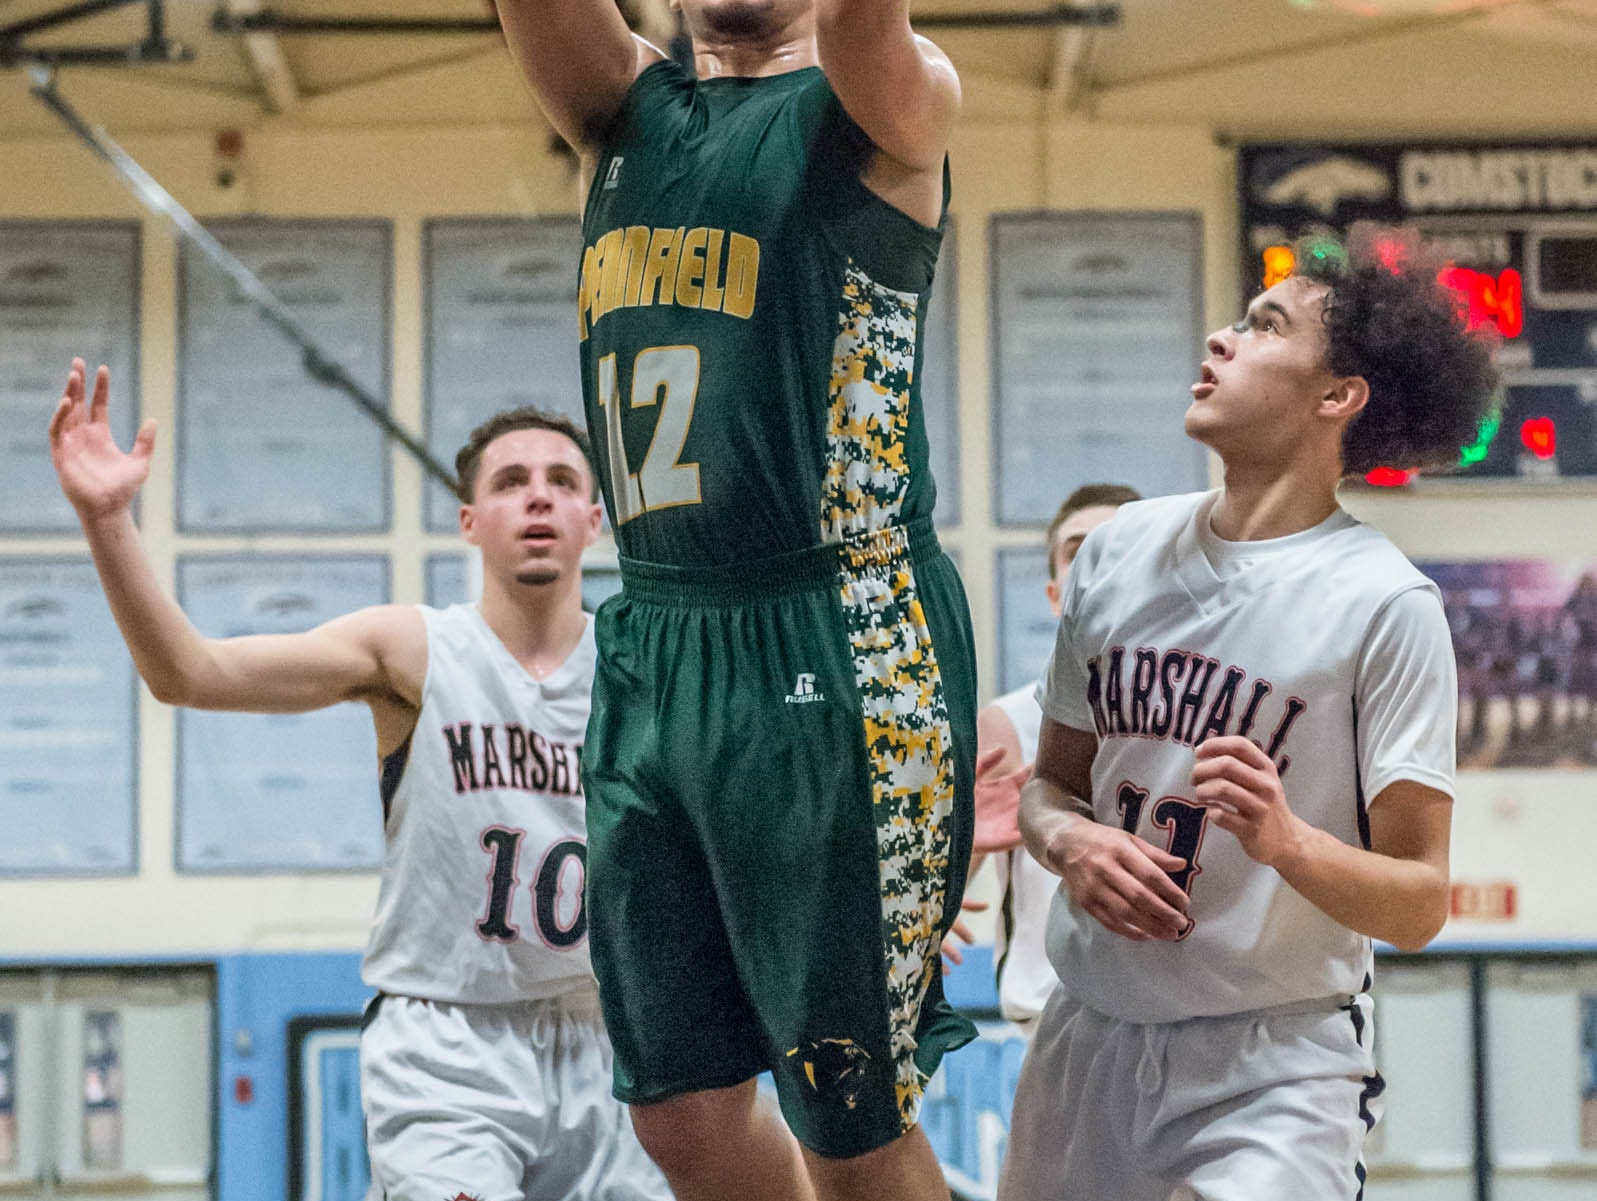 Pennfield's Steffen Kinne (12) goes for the basket during Monday's district game.